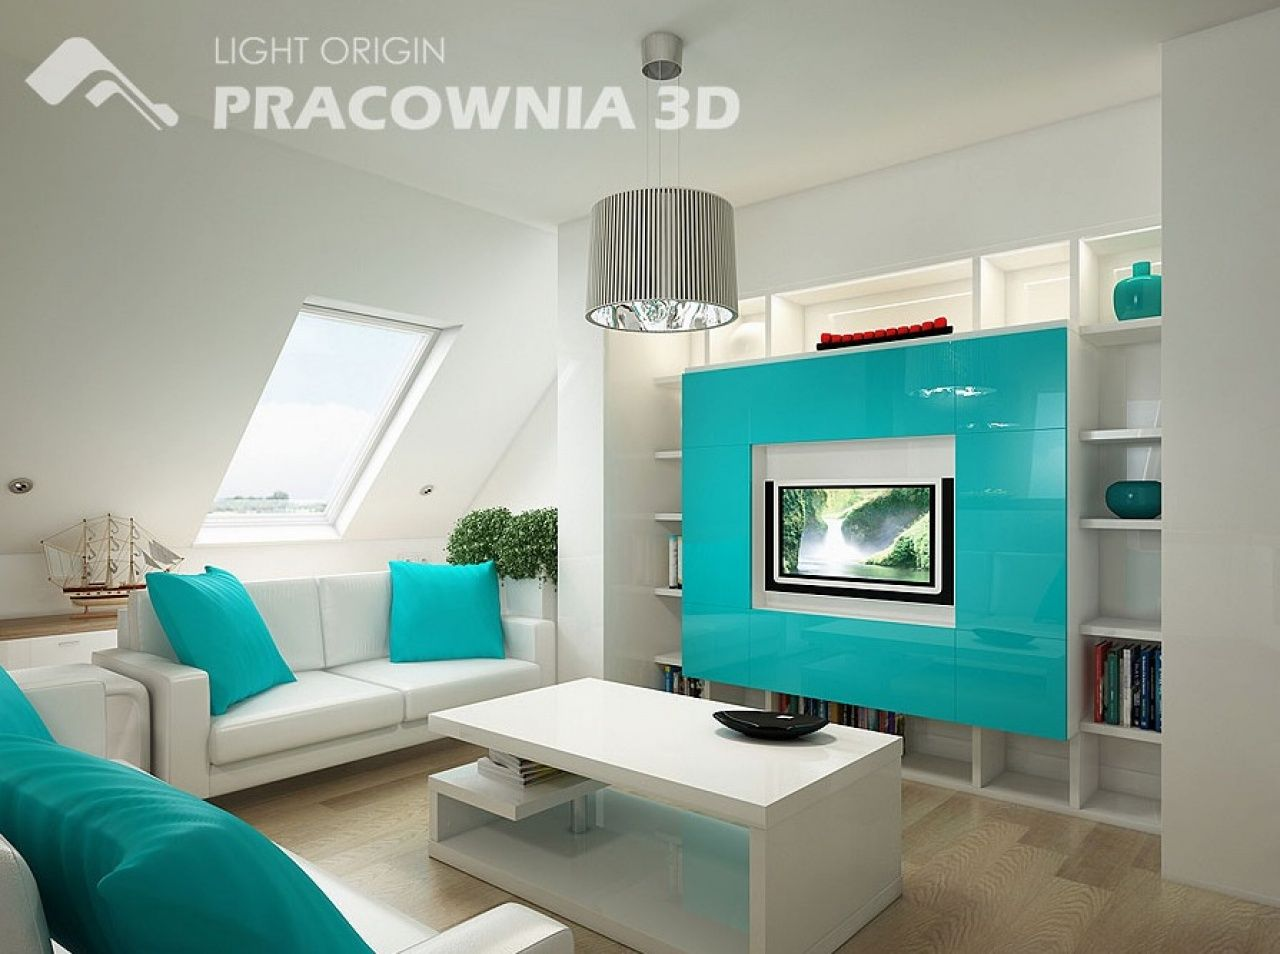 groovy-white-light-blue-living-room-design-interiorspin-blue